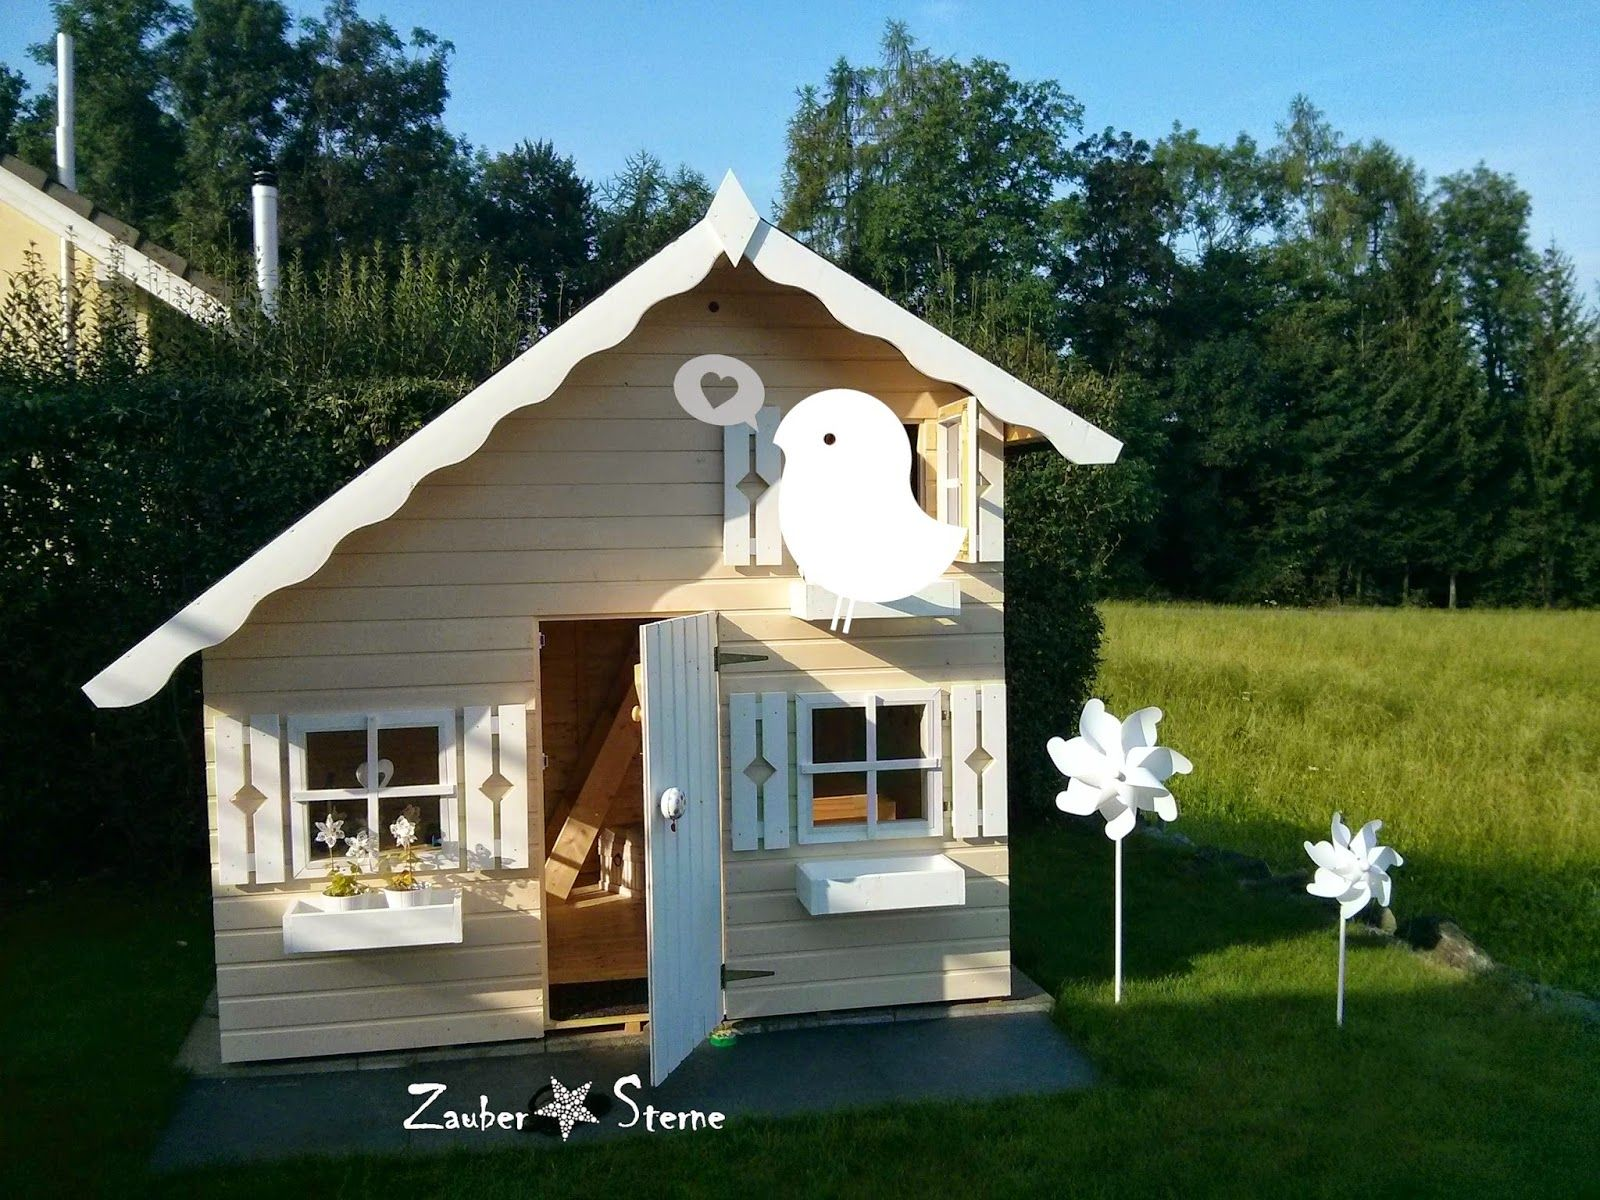 spielhaus tom kinderspielhaus kinder spielhaus pinterest playhouses play houses and. Black Bedroom Furniture Sets. Home Design Ideas